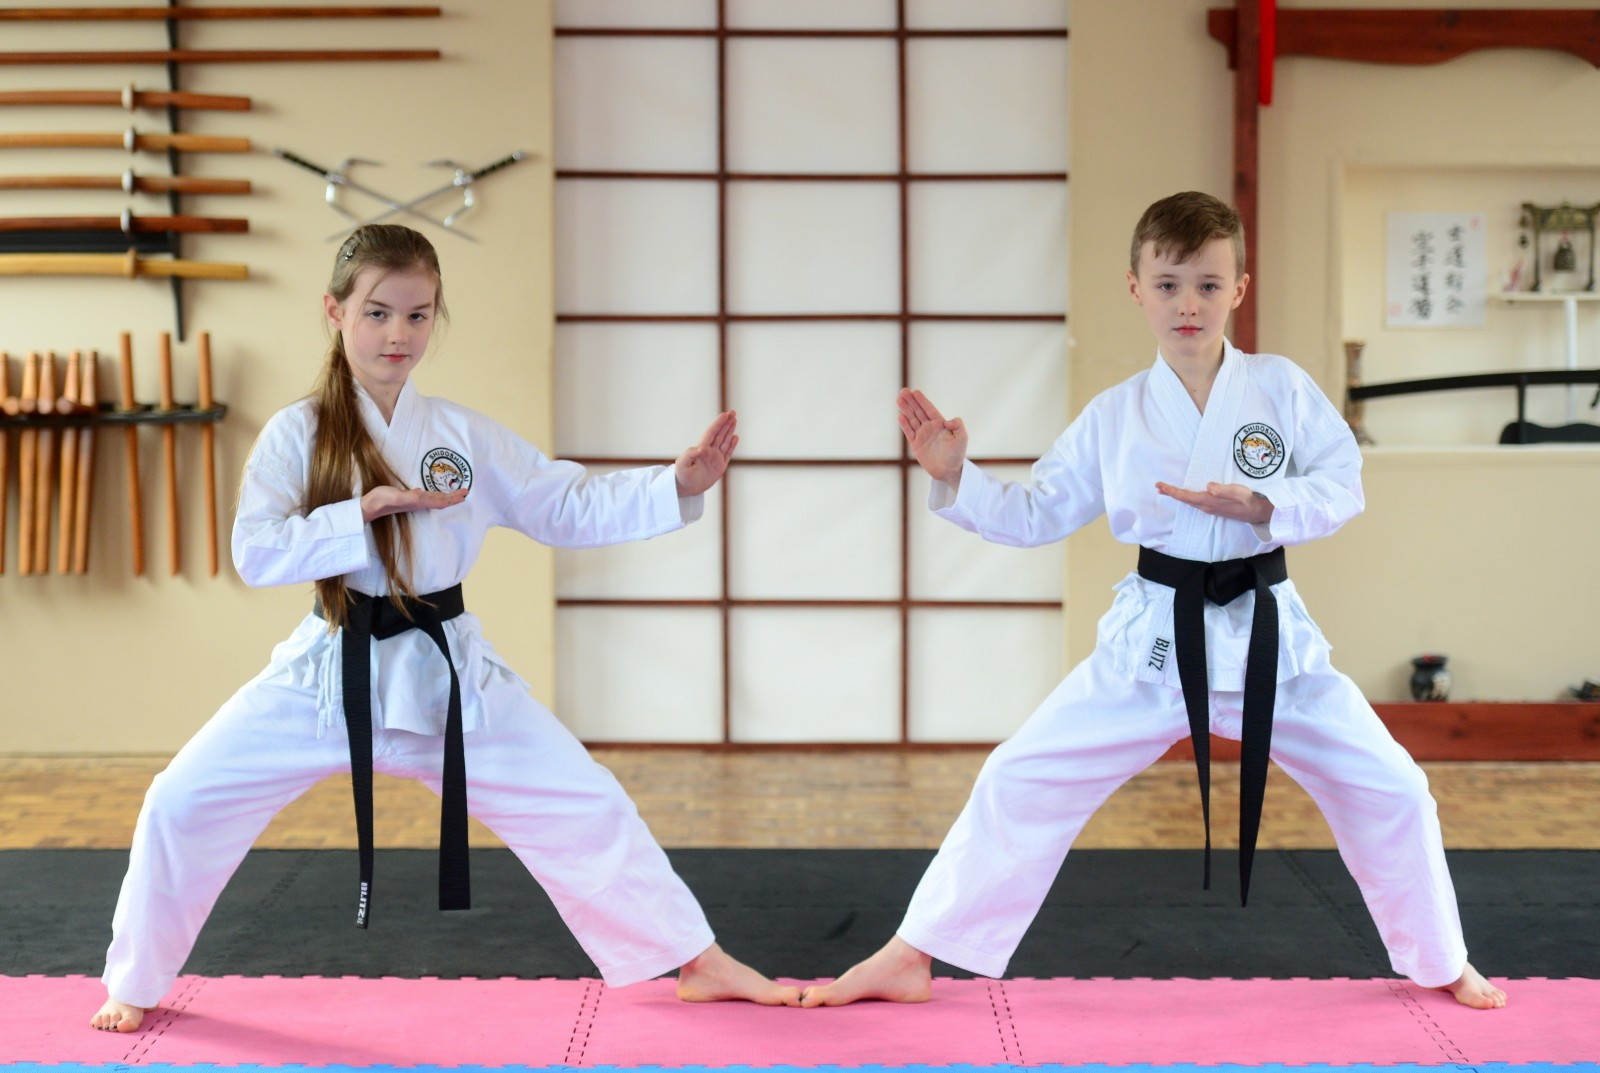 Karate kids Jac and Millie Cartledge have definently made their parents proud